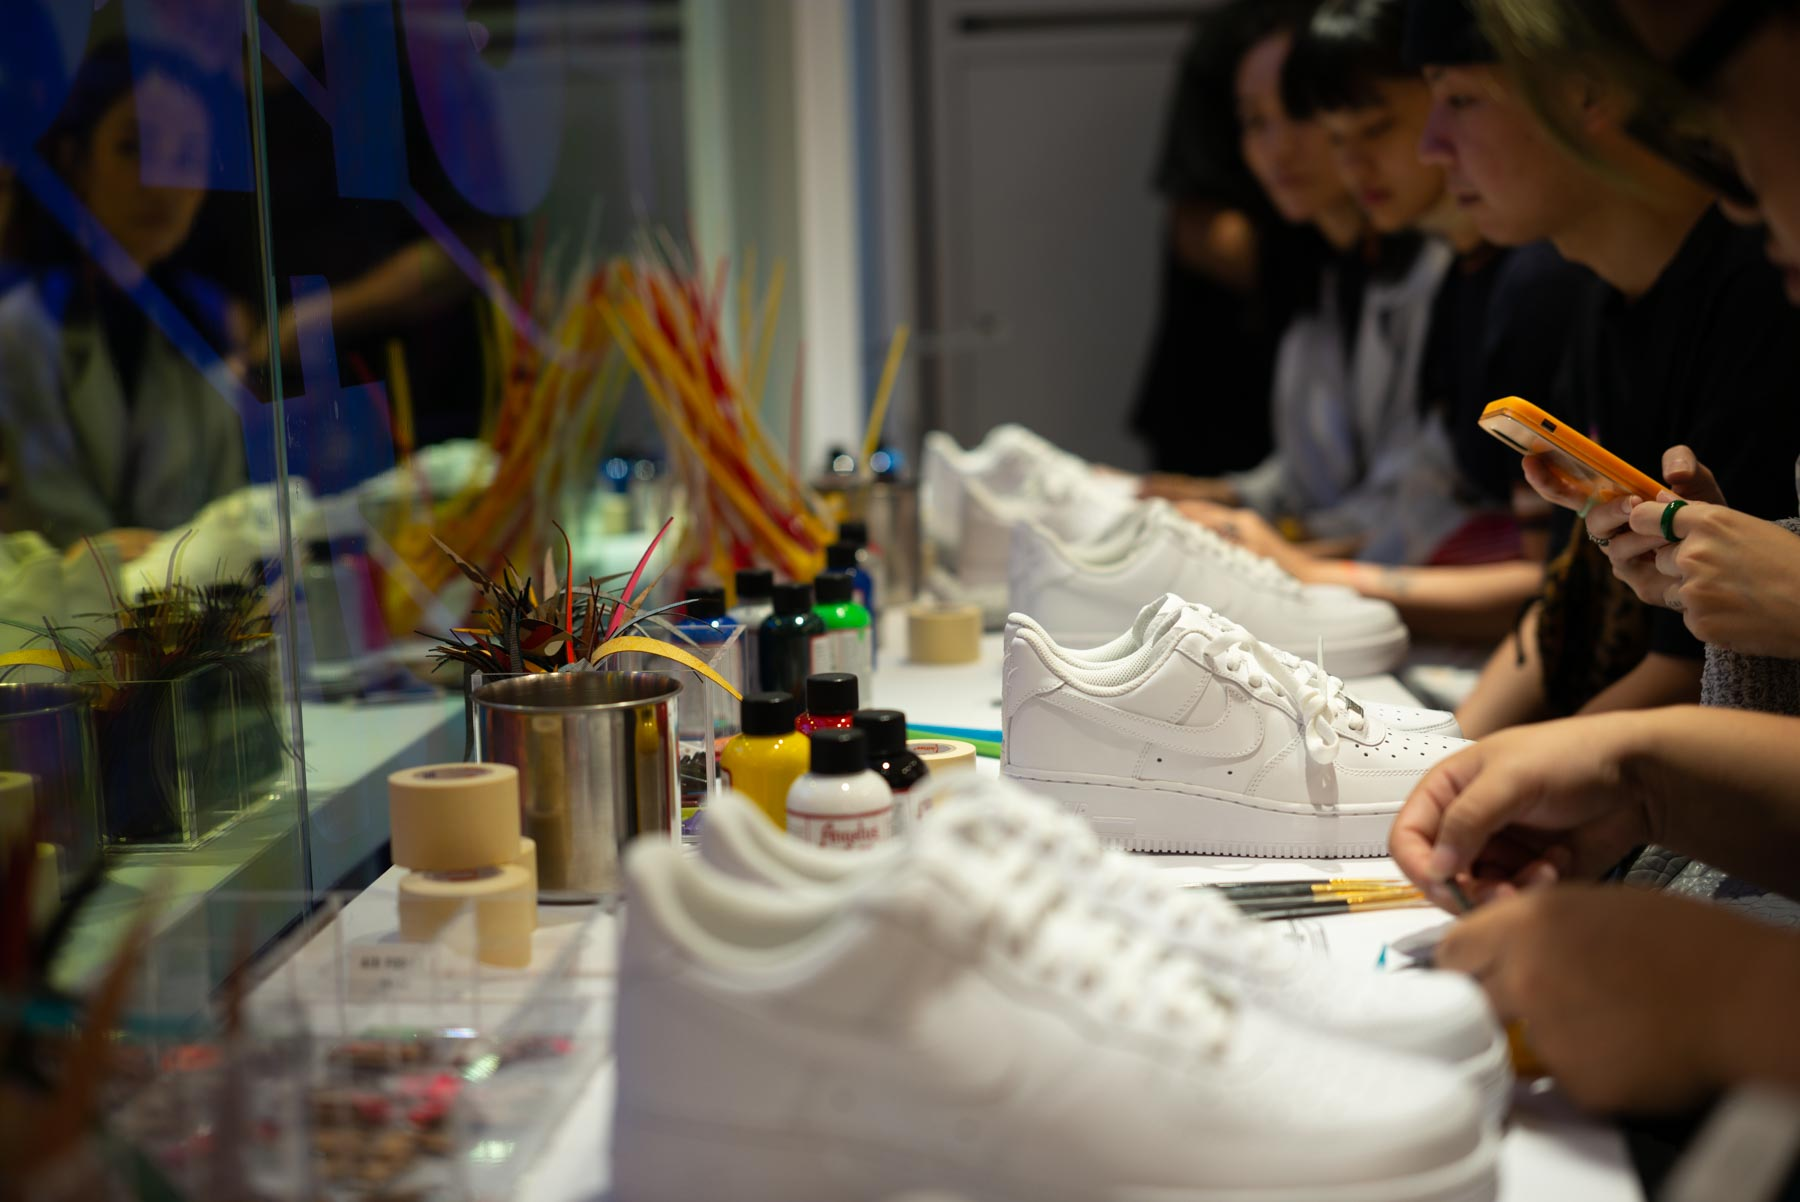 20180928-nike-airforce1-vogue-fashion-night-out-1009412